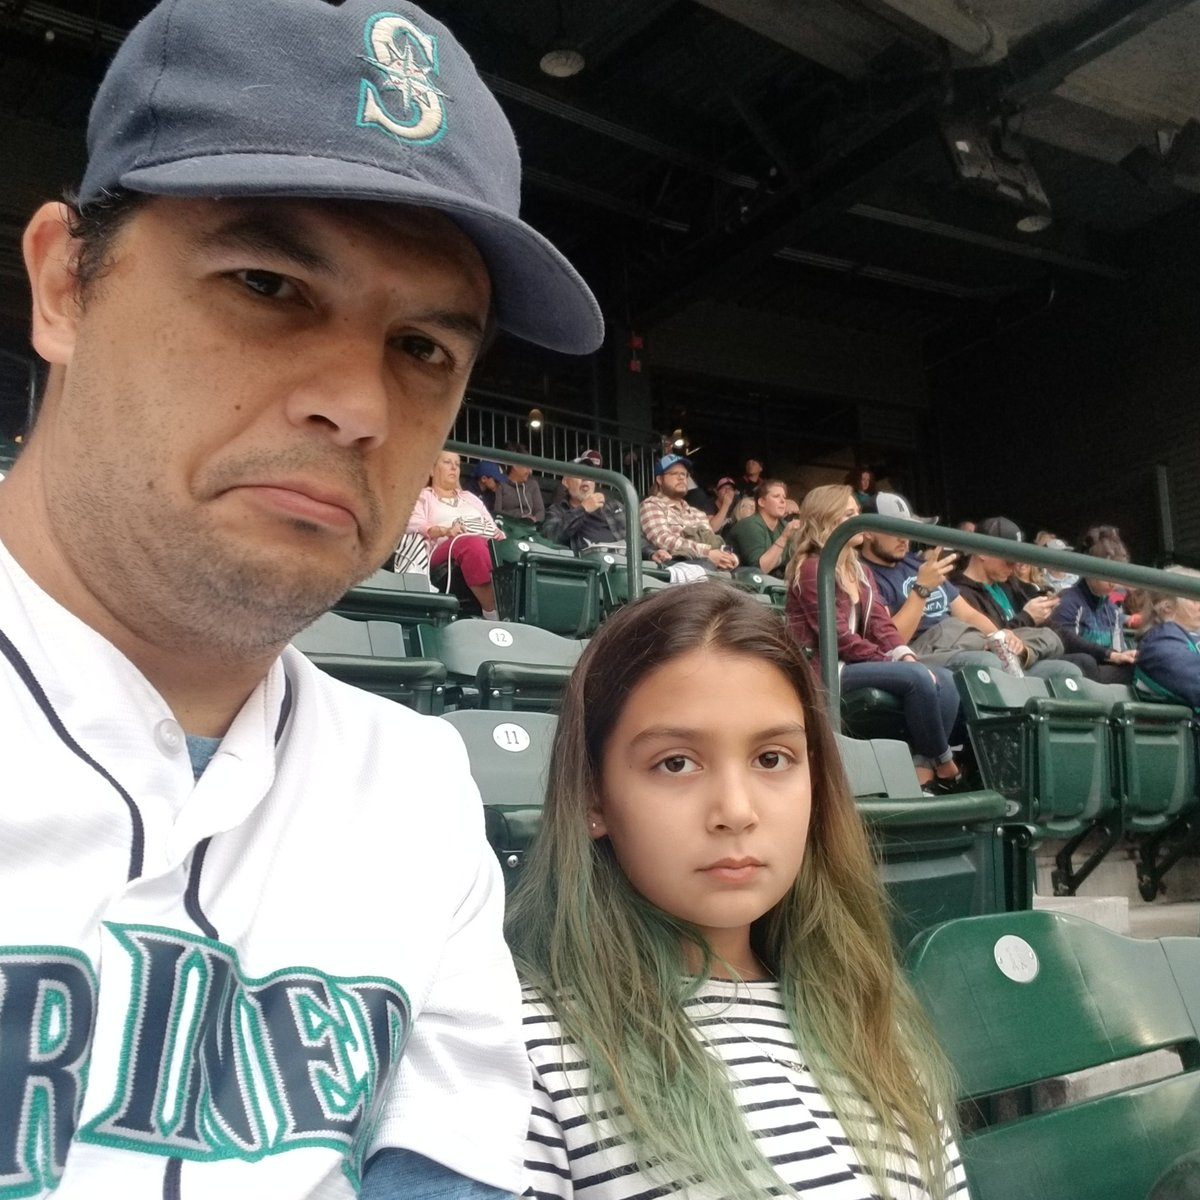 dea87ff83873  truetotheblue ·  SeavsTex  mlb  seattle  marinerspic.twitter.com nUgJH6VK4G  – at Safeco Field